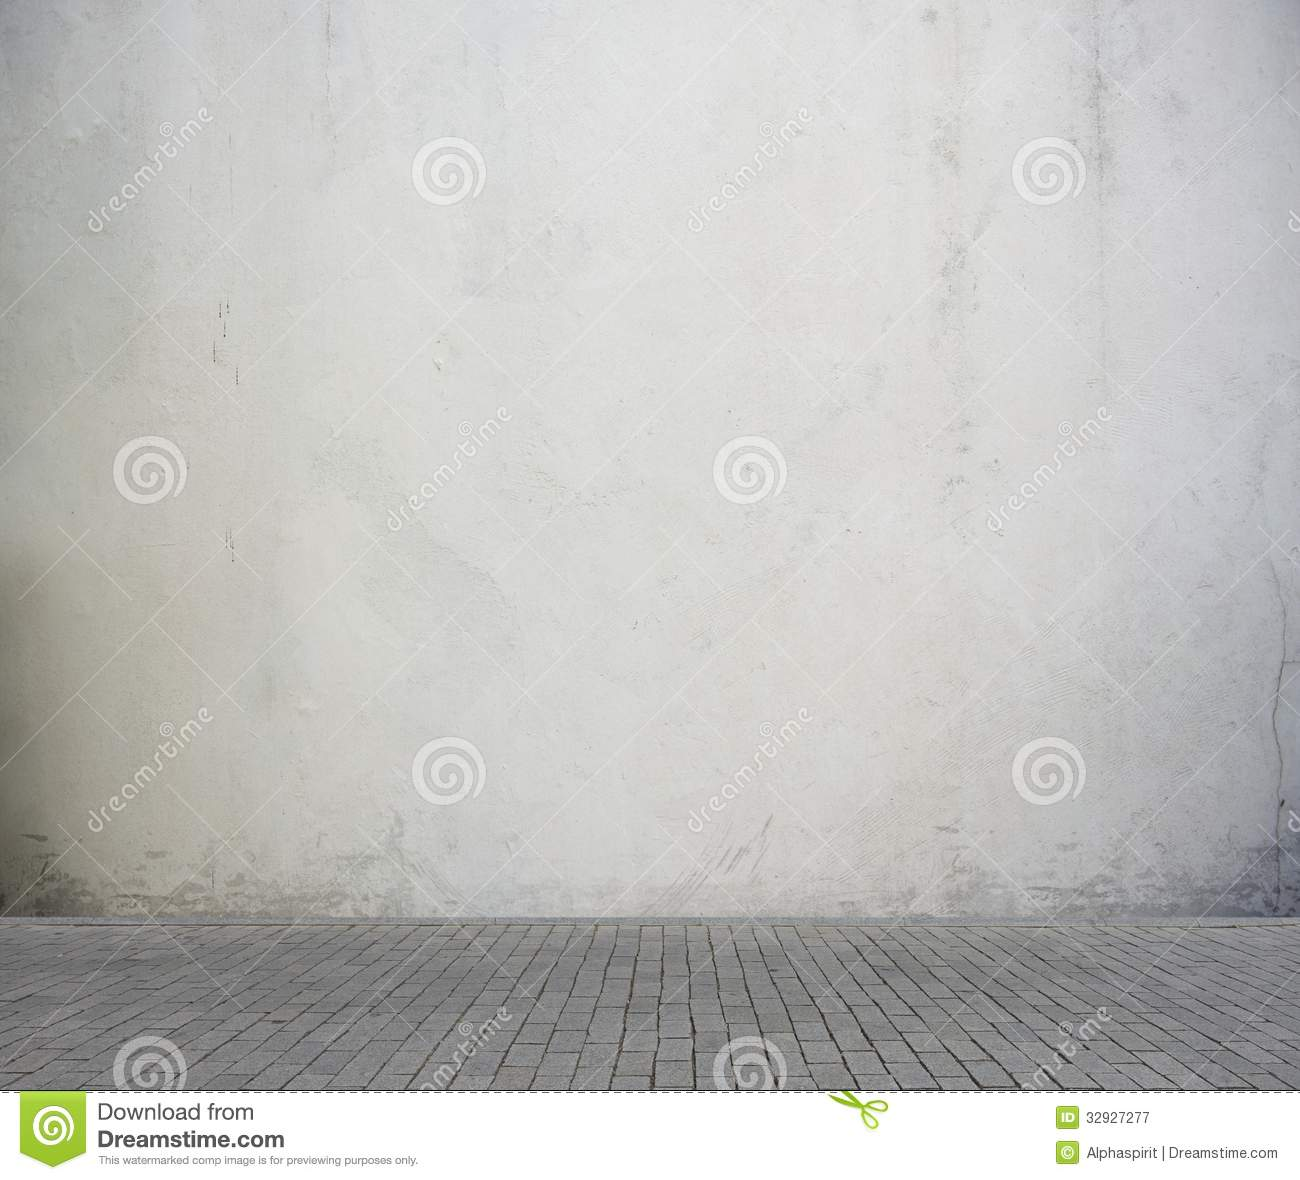 Vintage Room Background Stock Image. Image Of Gray